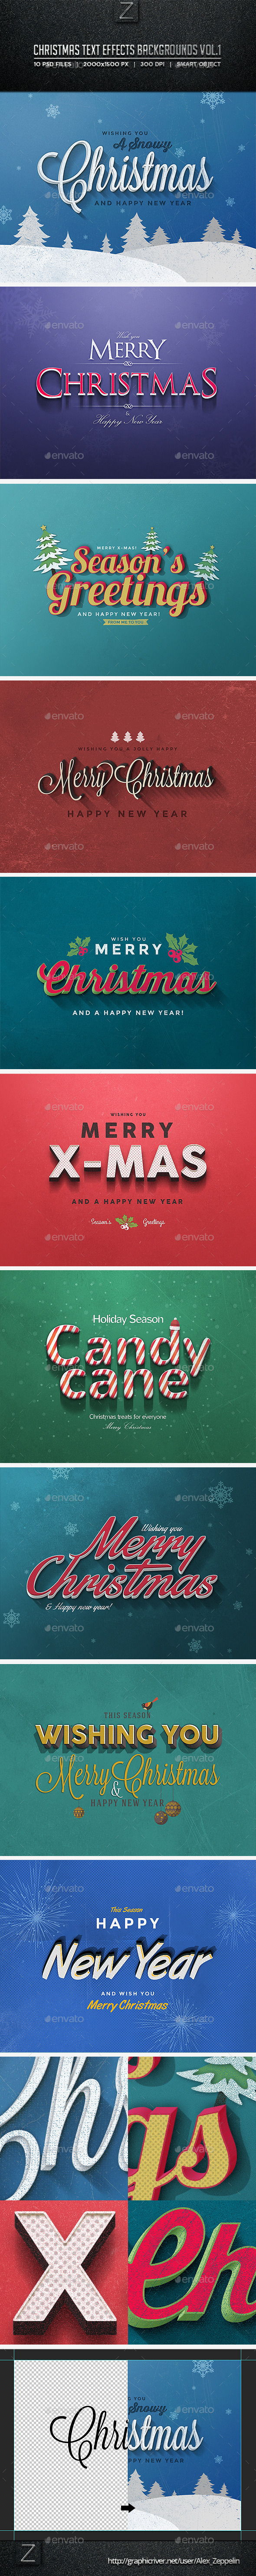 GraphicRiver Christmas Text Effects Backgrounds Vol.1 9544520